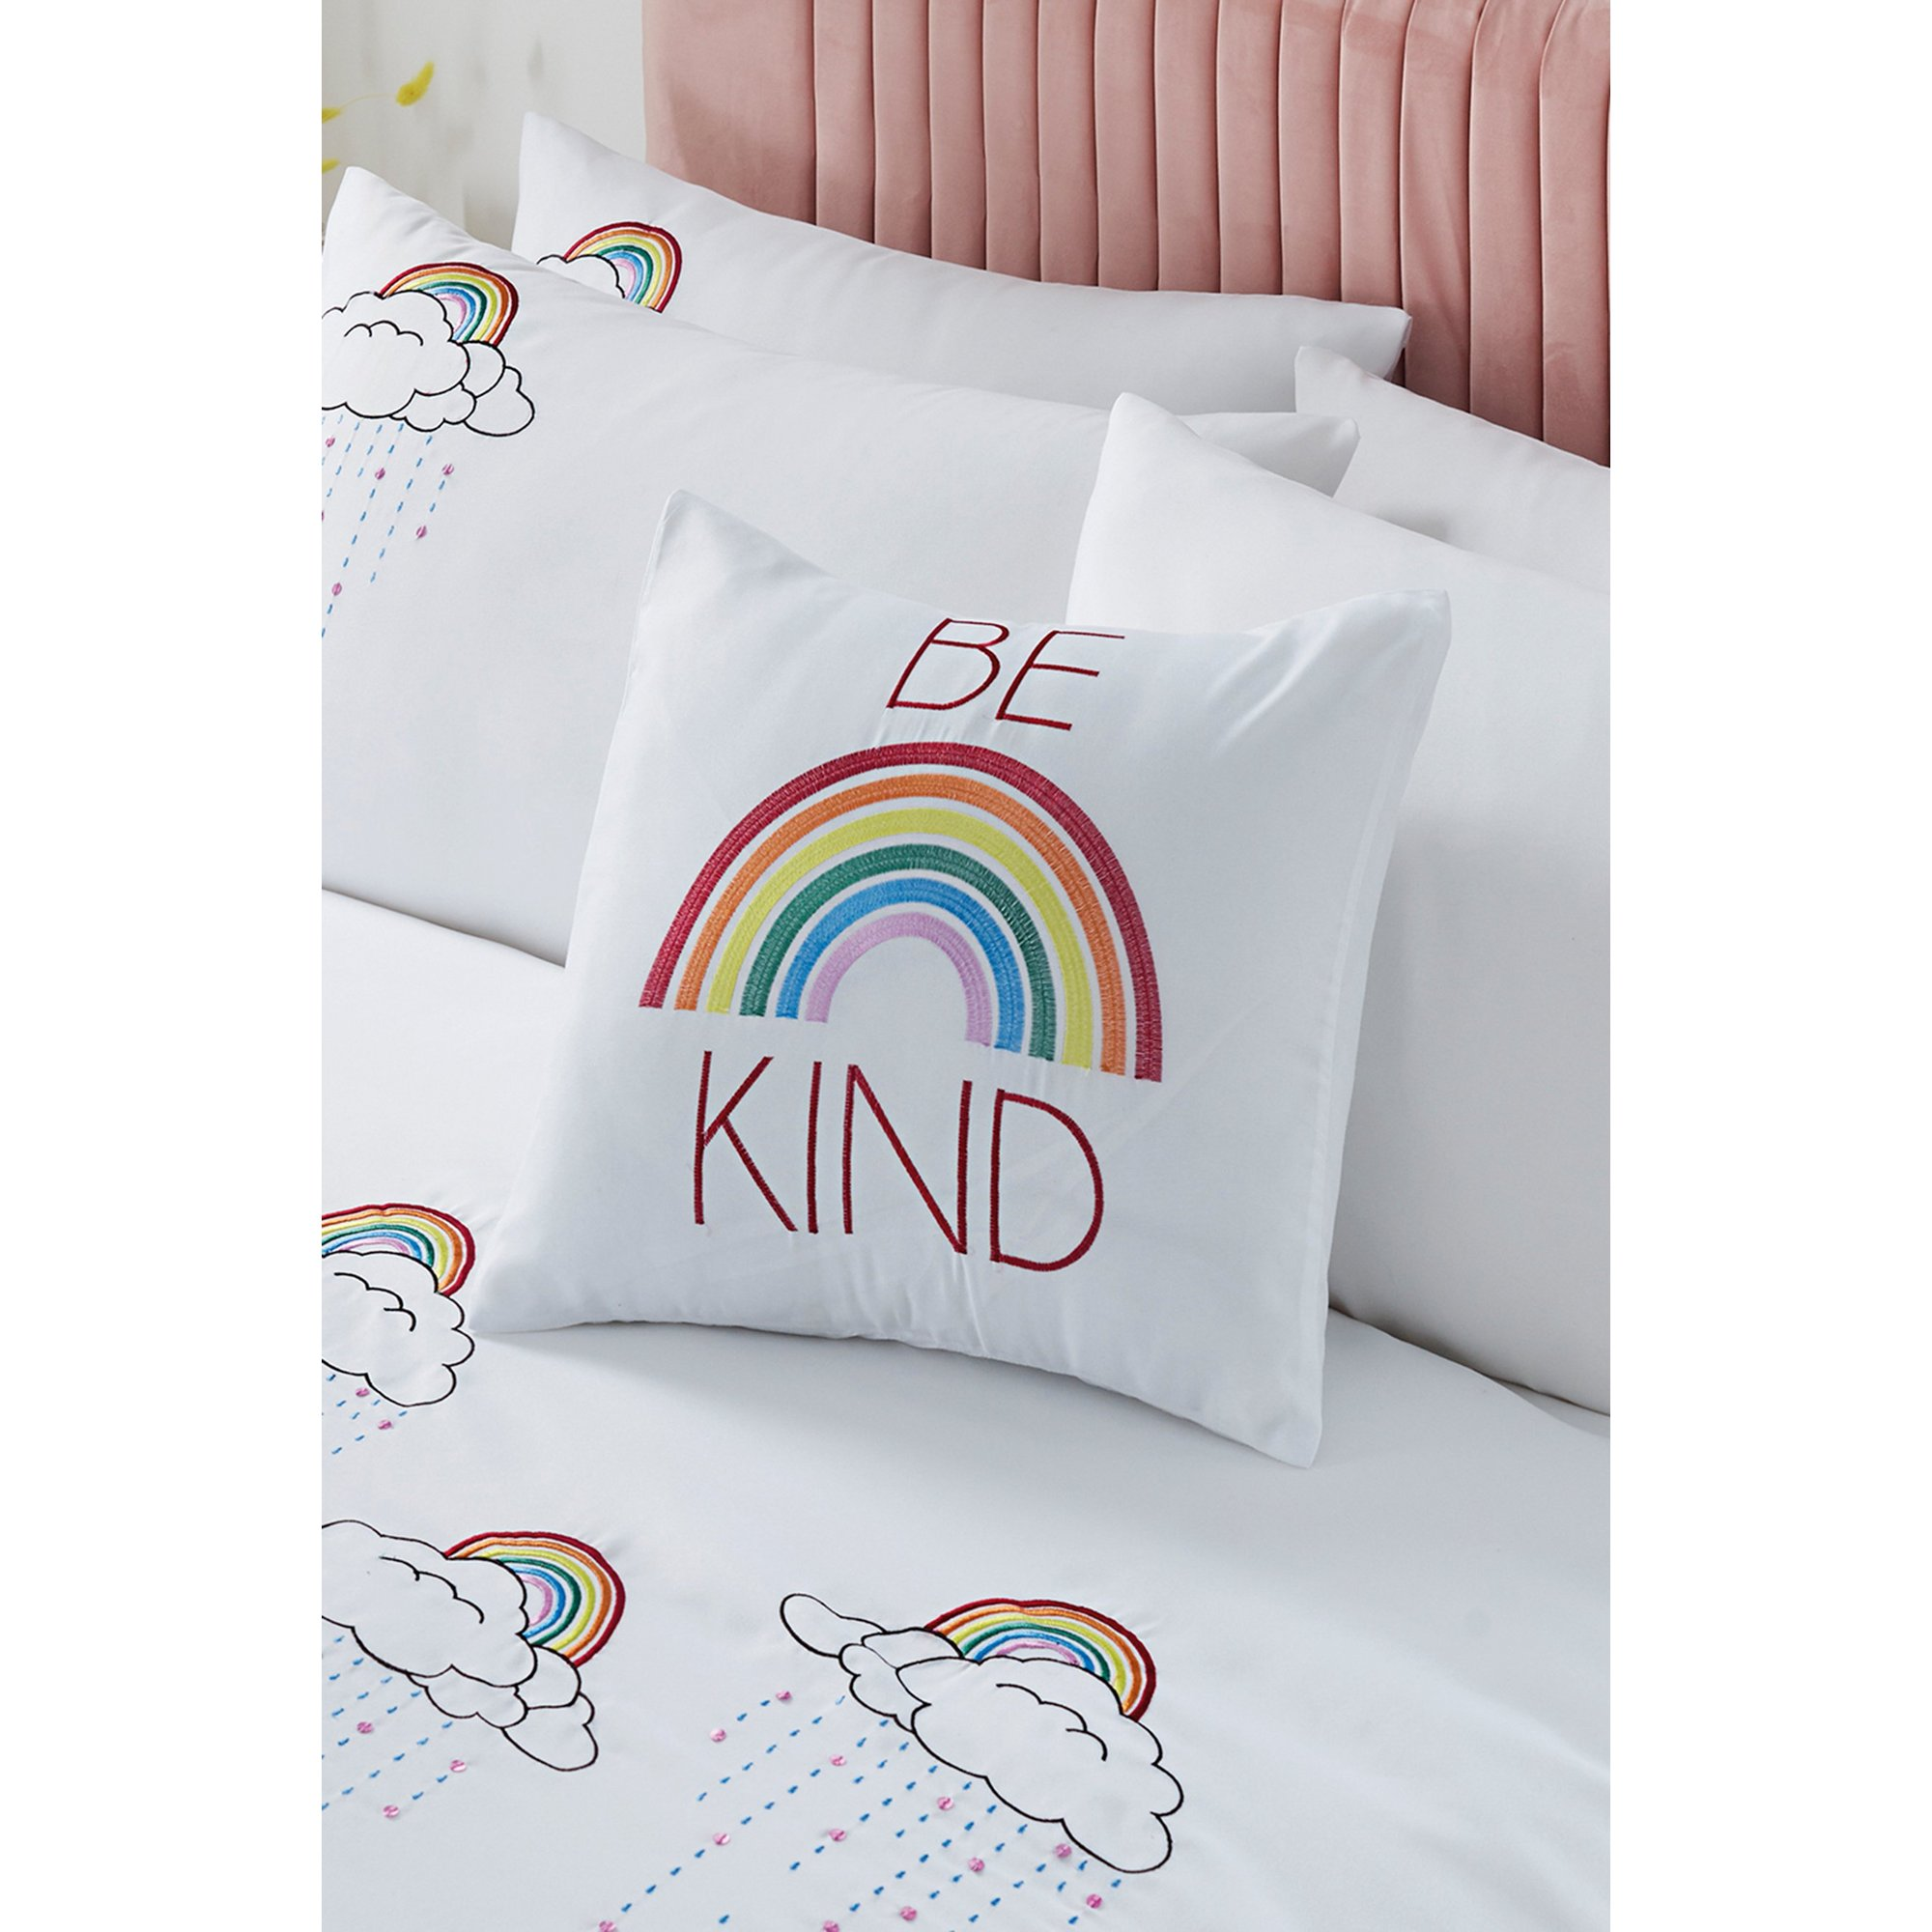 Image of Be Kind Cushion Cover